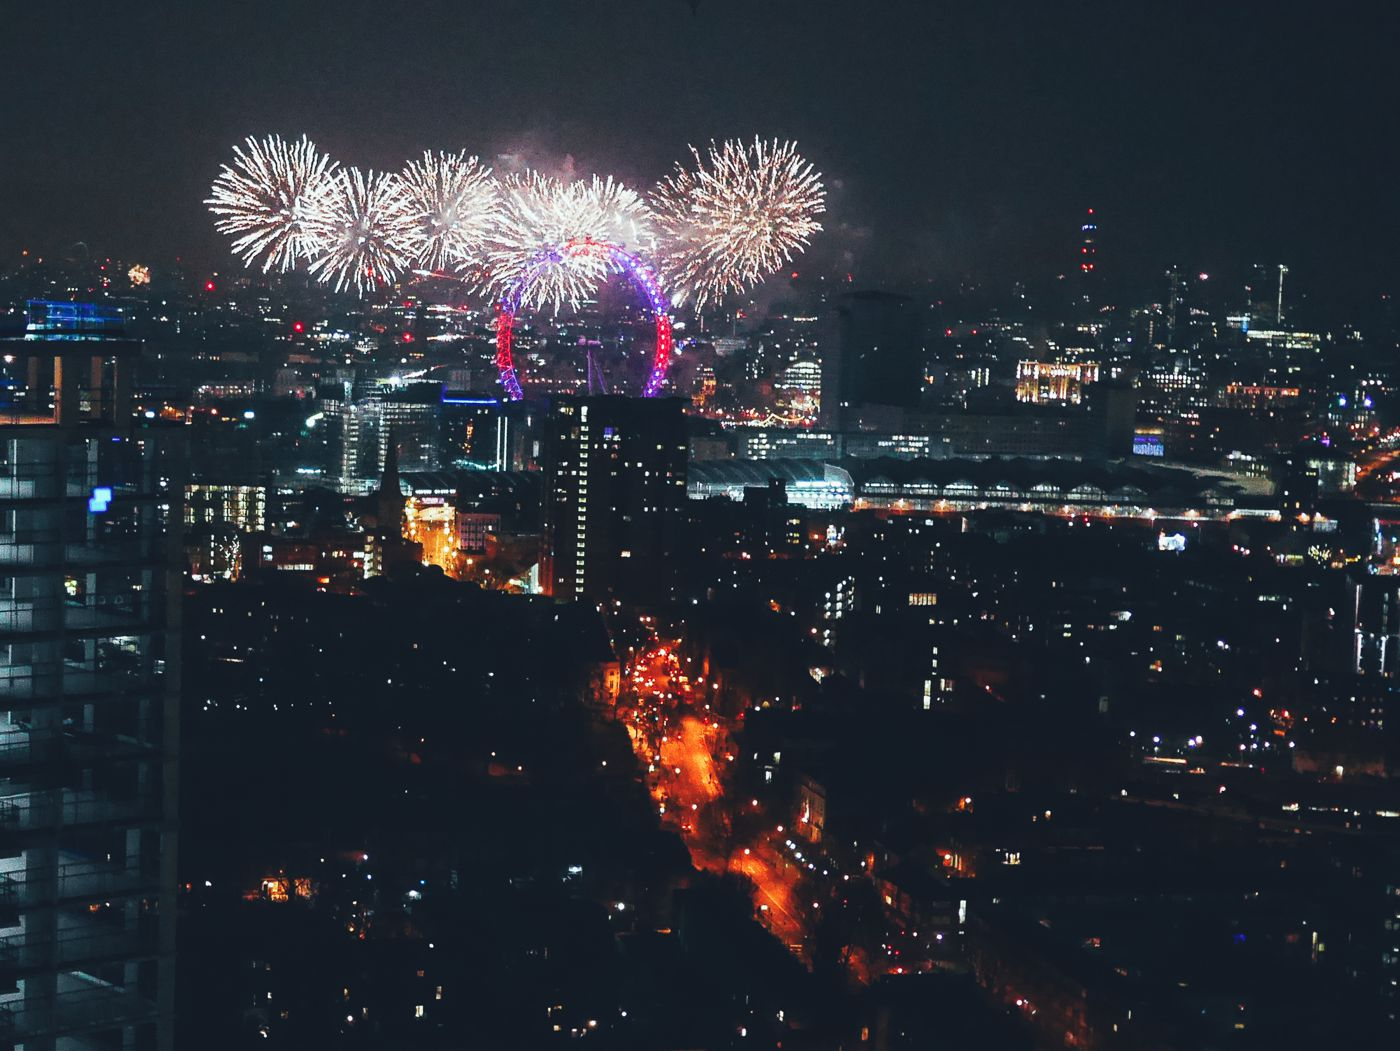 Sneak Peak Of My New Flat + New Year's Eve Celebrations In London With Friends! (19)